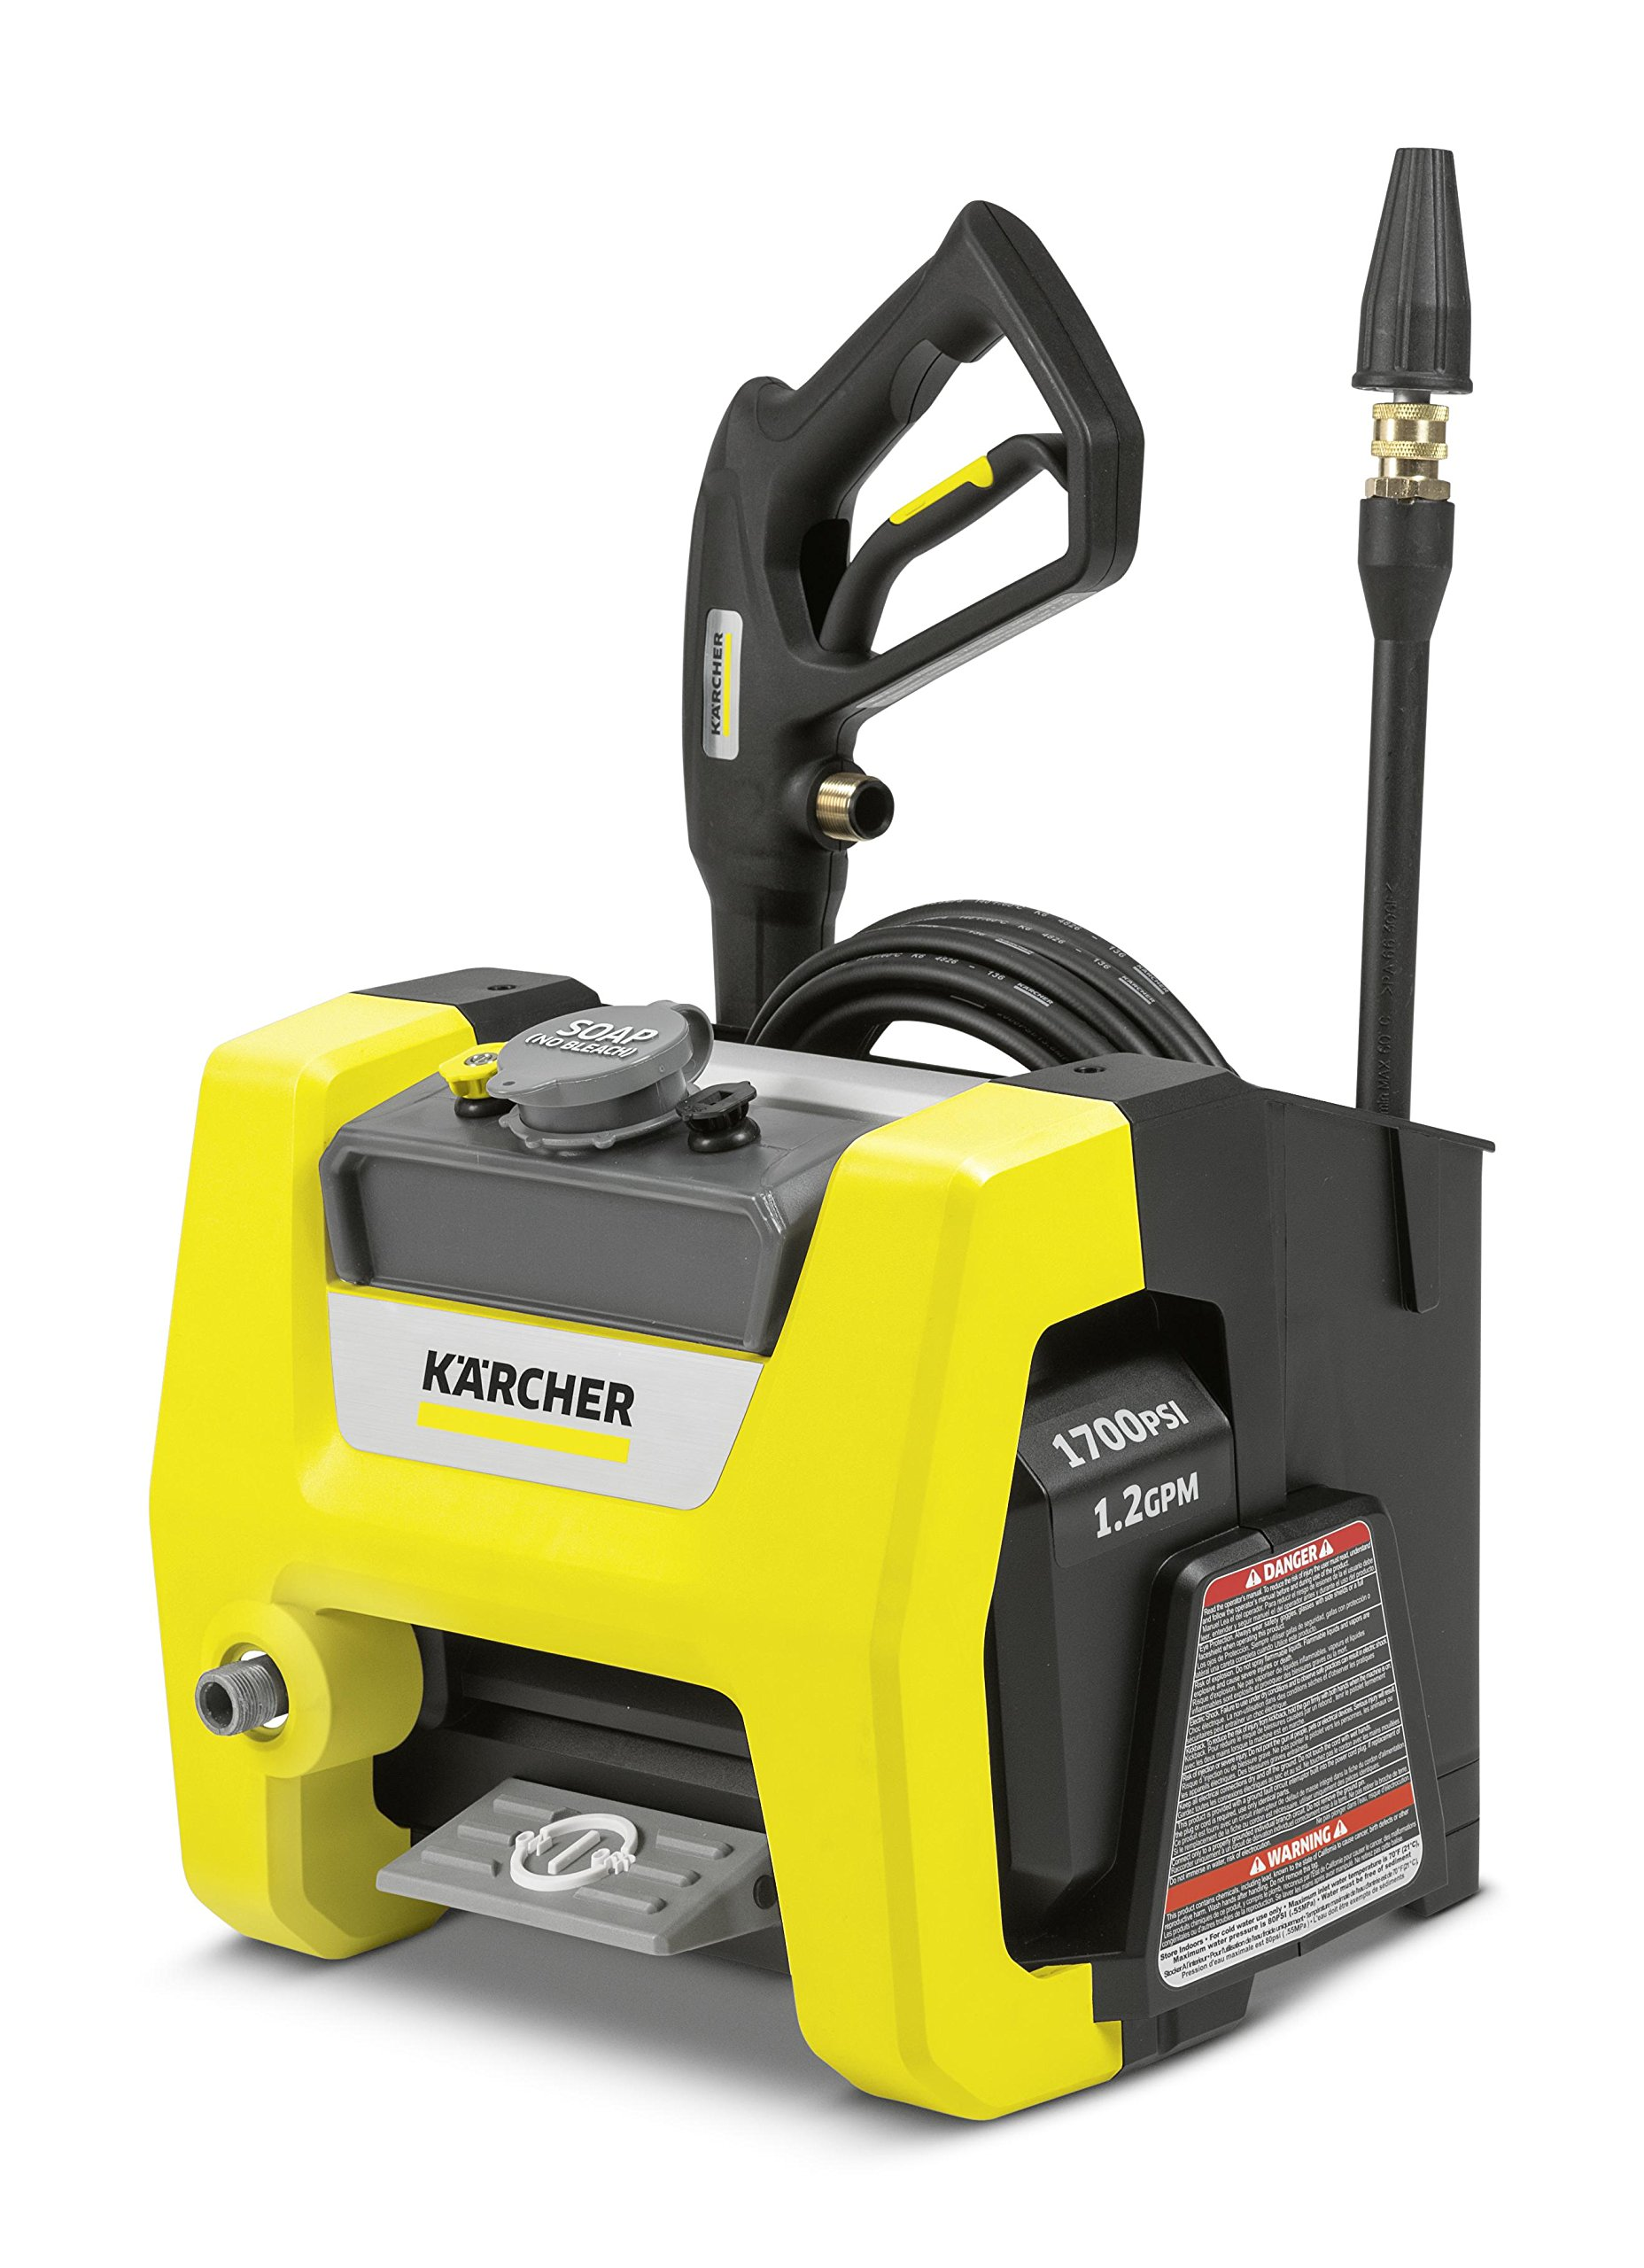 Karcher K1700 Cube Electric Power Pressure Washer 1700 PSI TruPressure, 3-Year Warranty, Turbo Nozzle Included